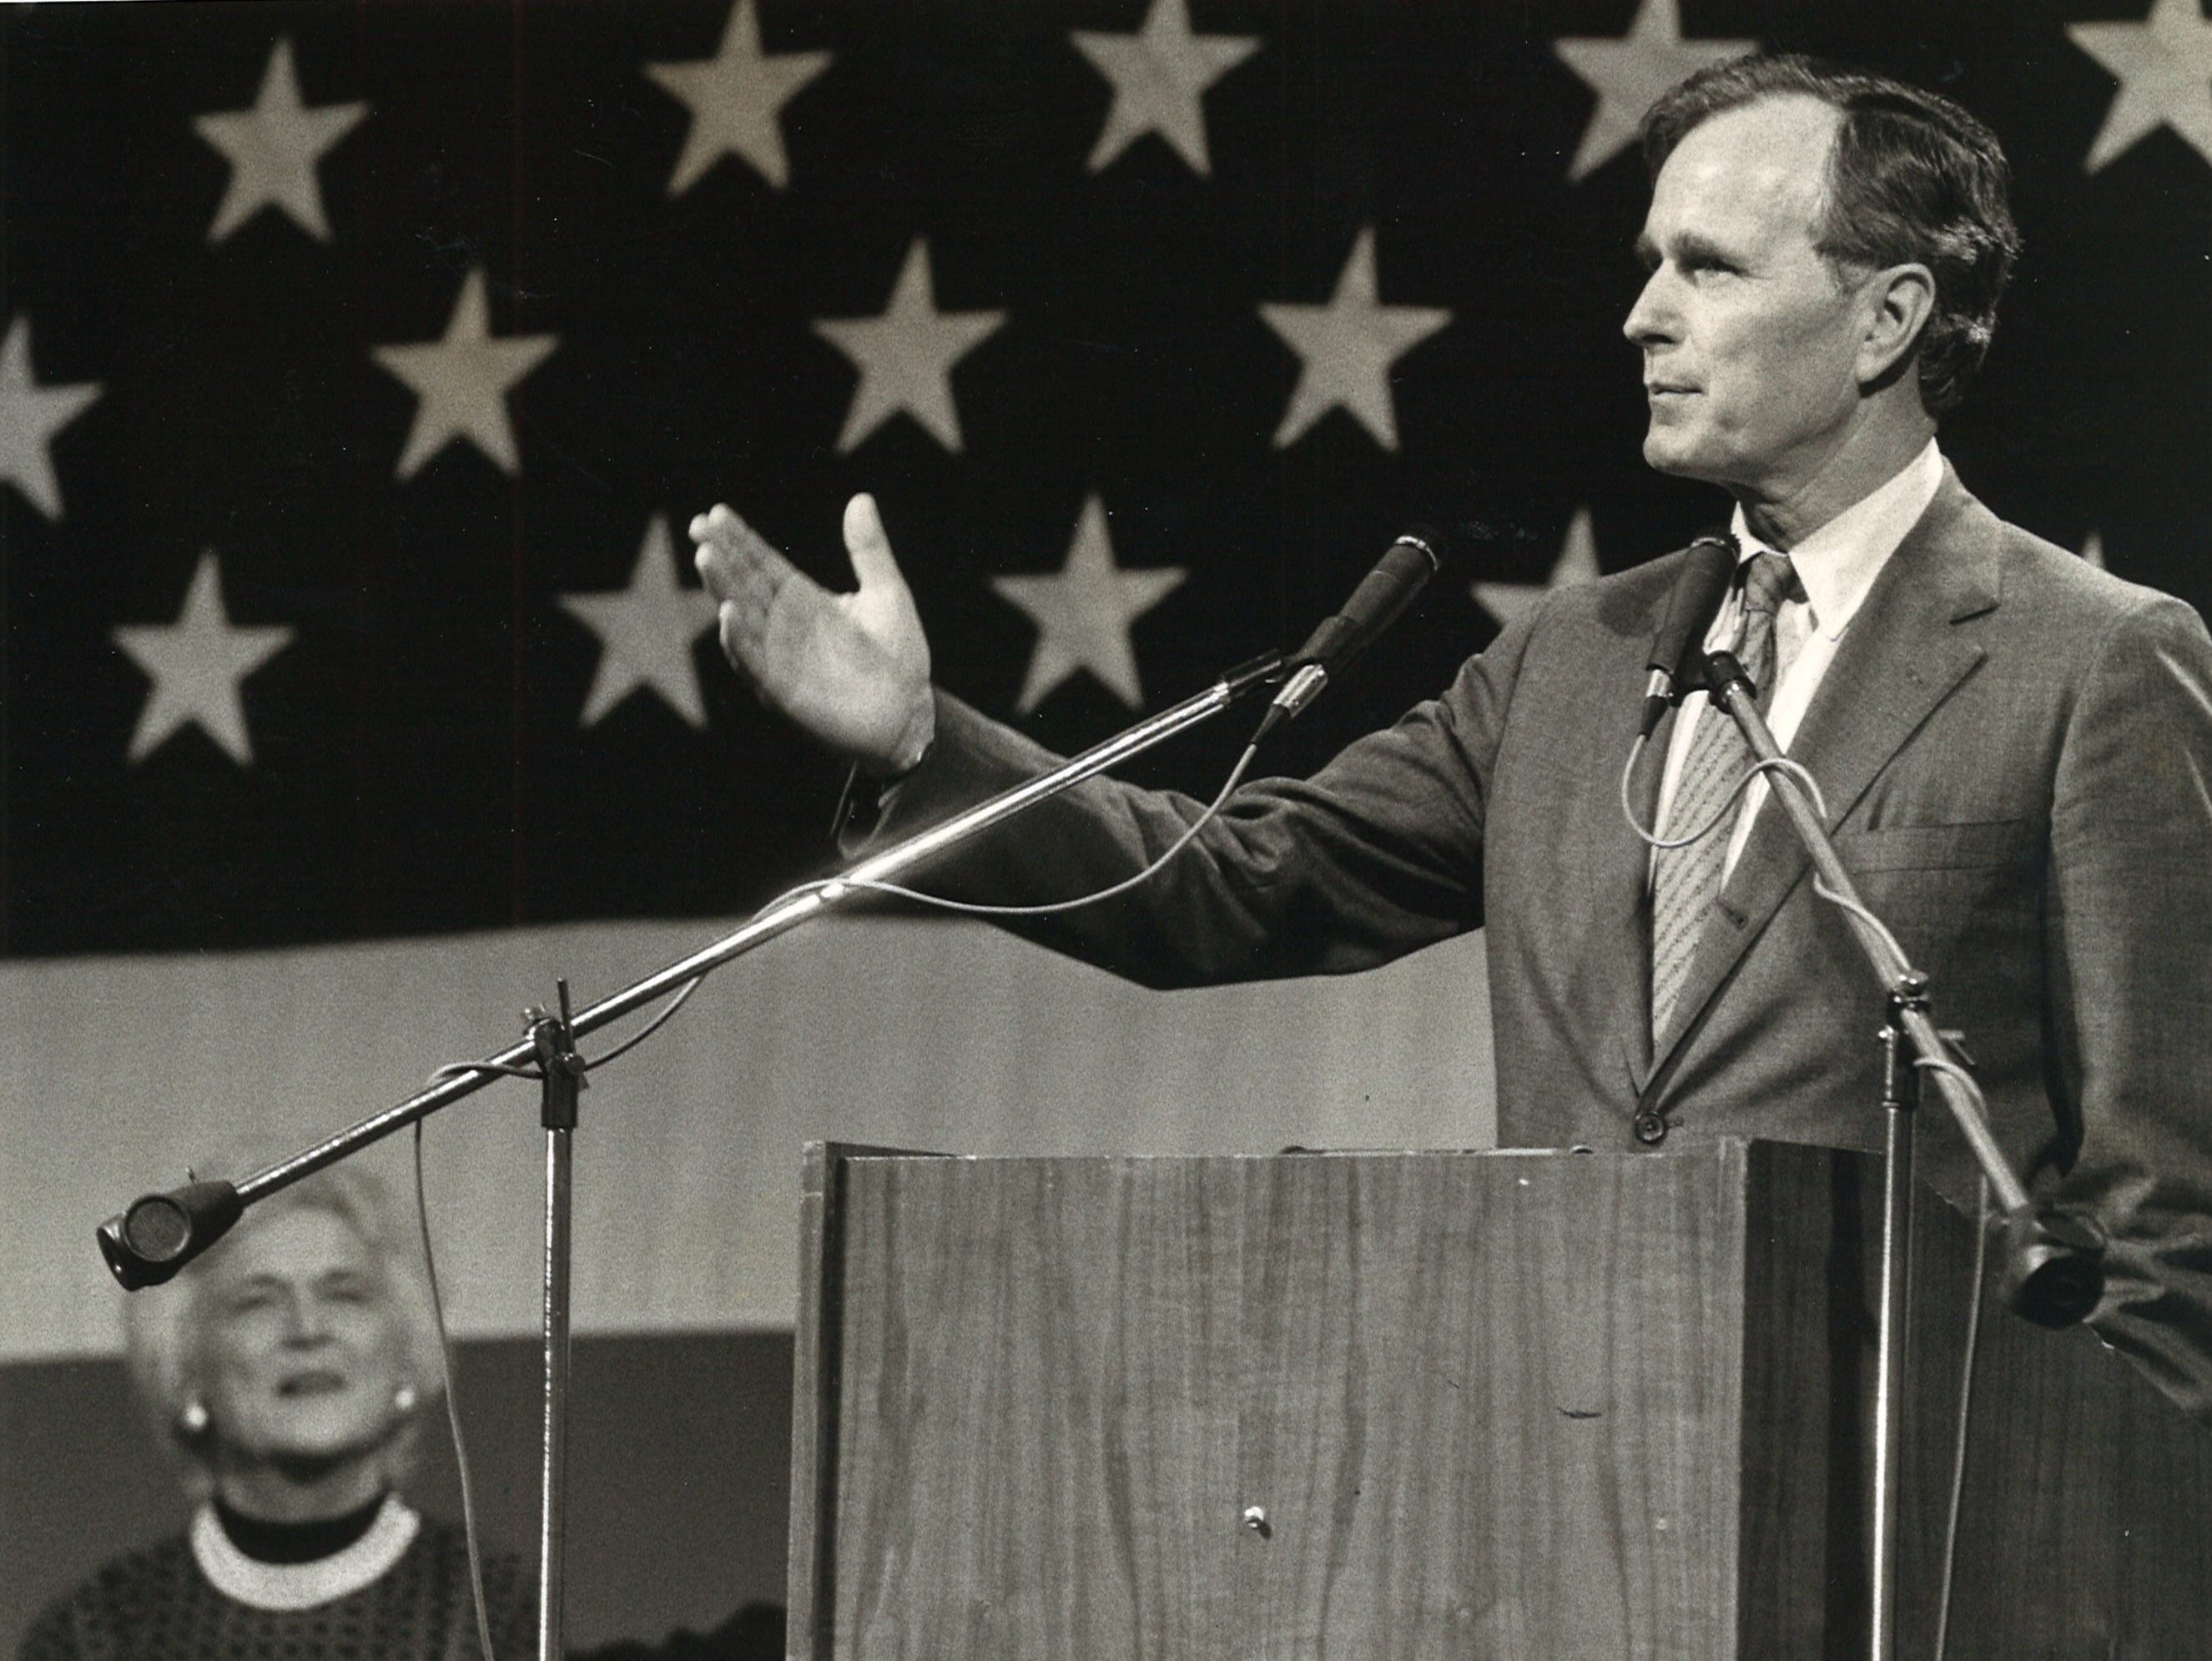 George Bush addresses auditorium audience in Corpus Christi in October 1983.